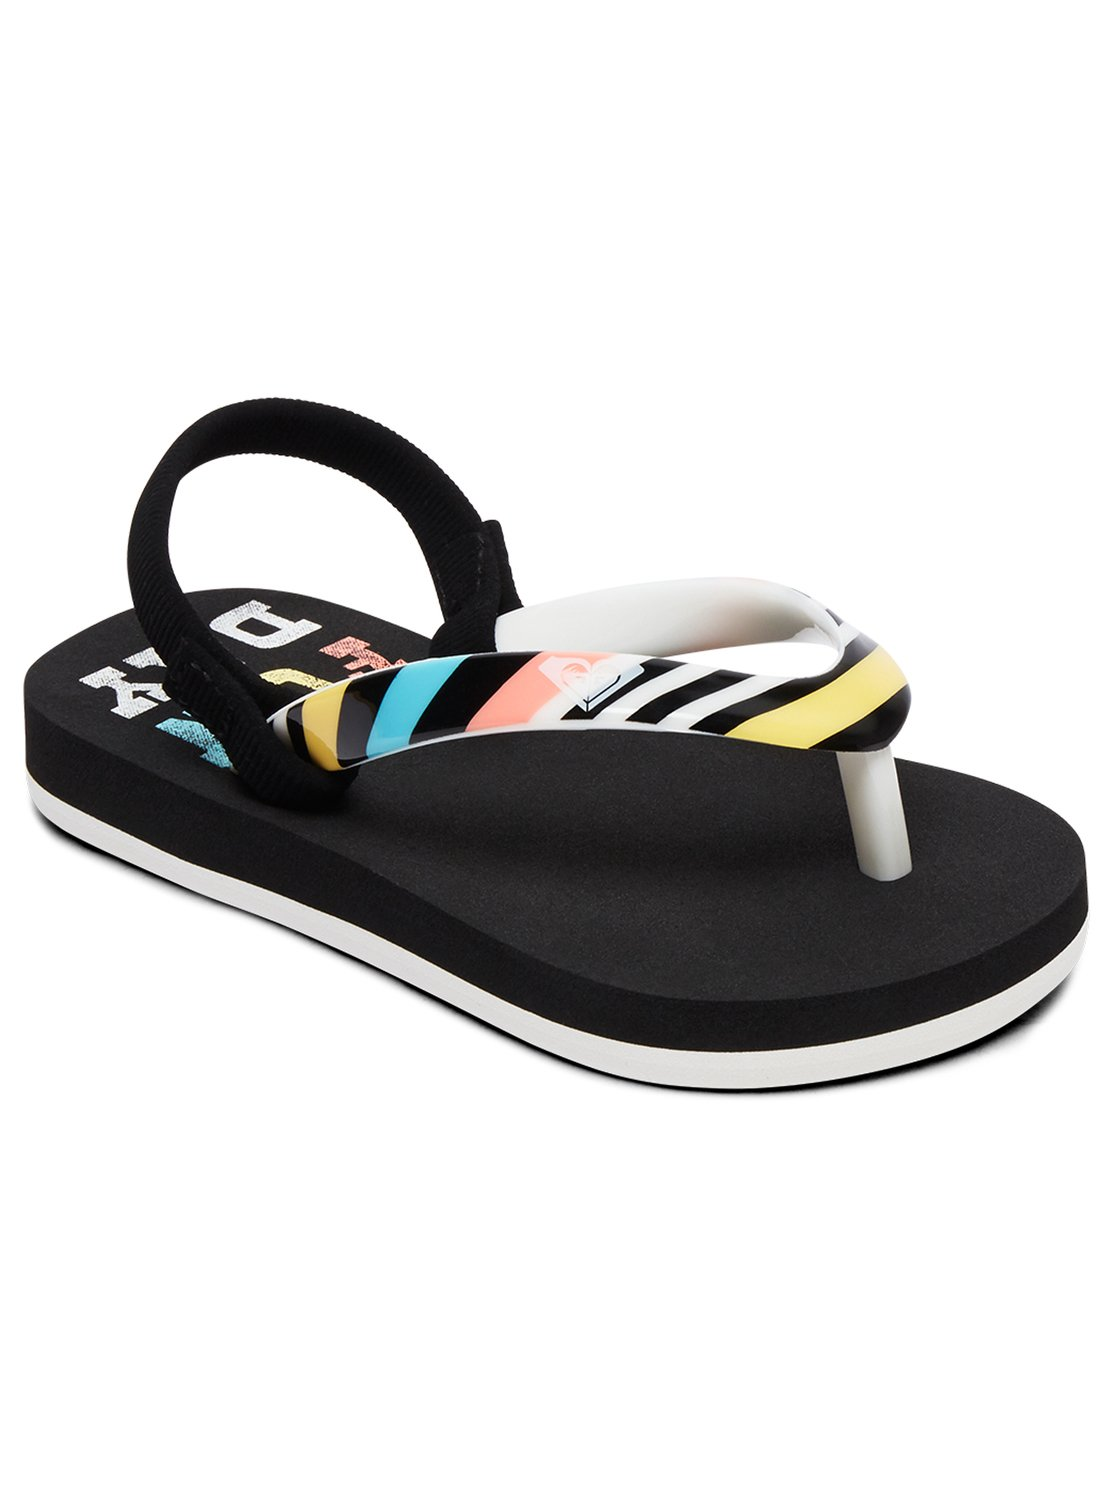 473fa6b80 0 Girl s 2-6 Pebbles Sandals Black AROL100004 Roxy. Aero Surf Club Sunset  Flip-Flop (84 MXN) ❤ liked on Polyvore featuring shoes ...